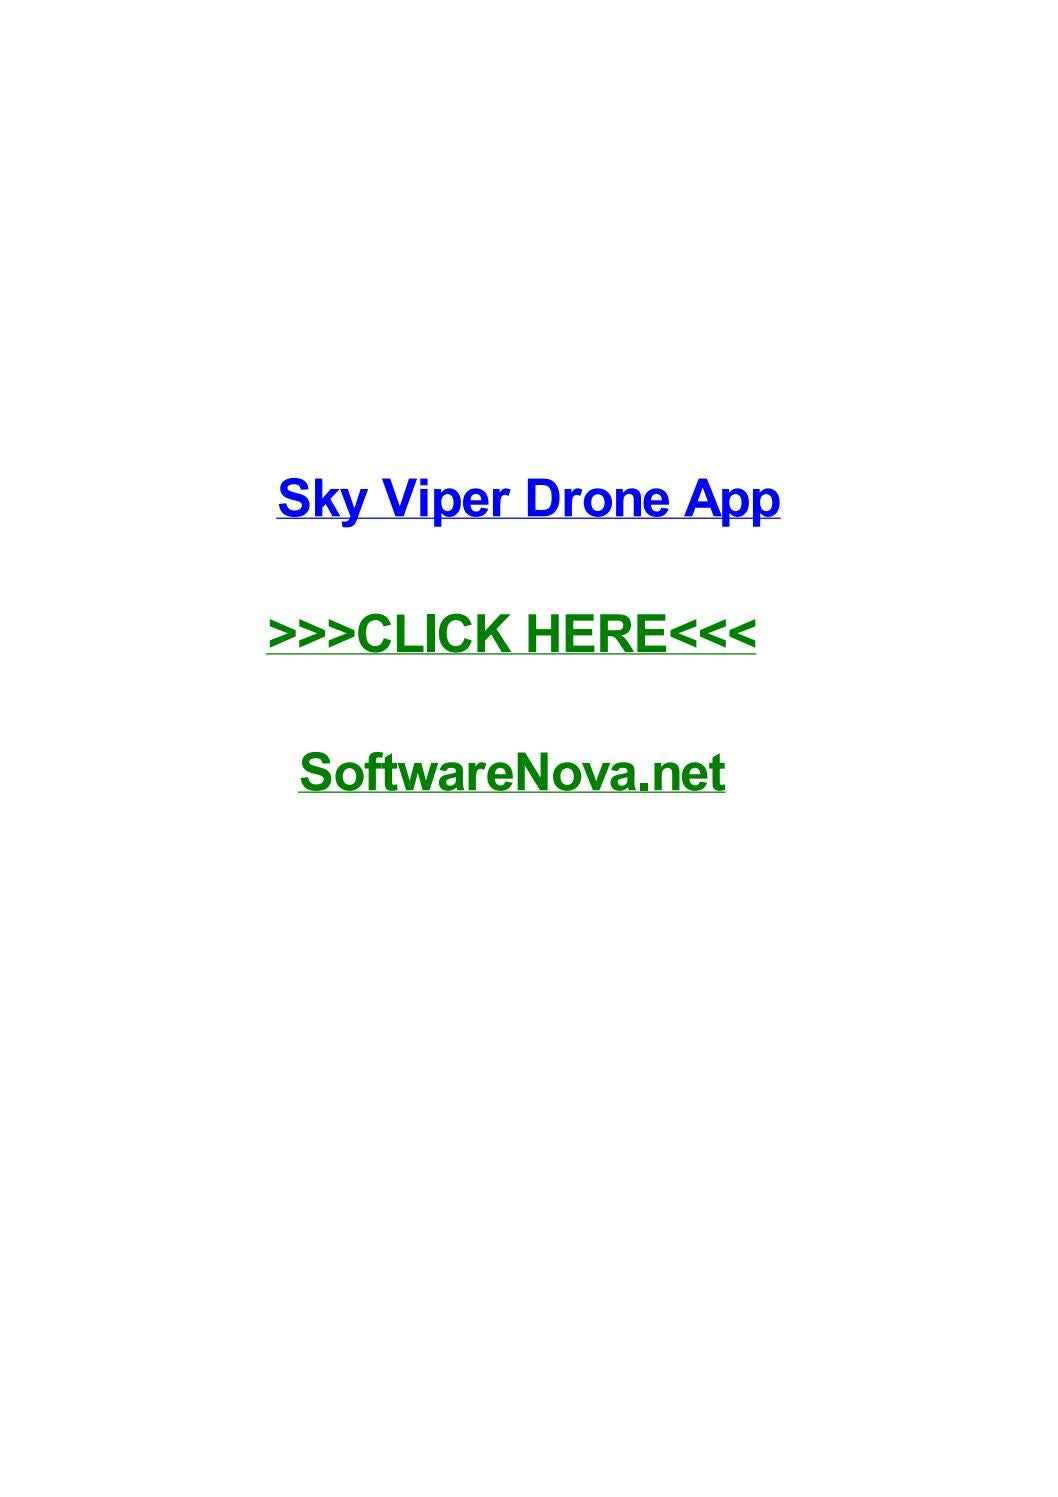 Sky Viper App >> Sky Viper Drone App By Loriaofo Issuu